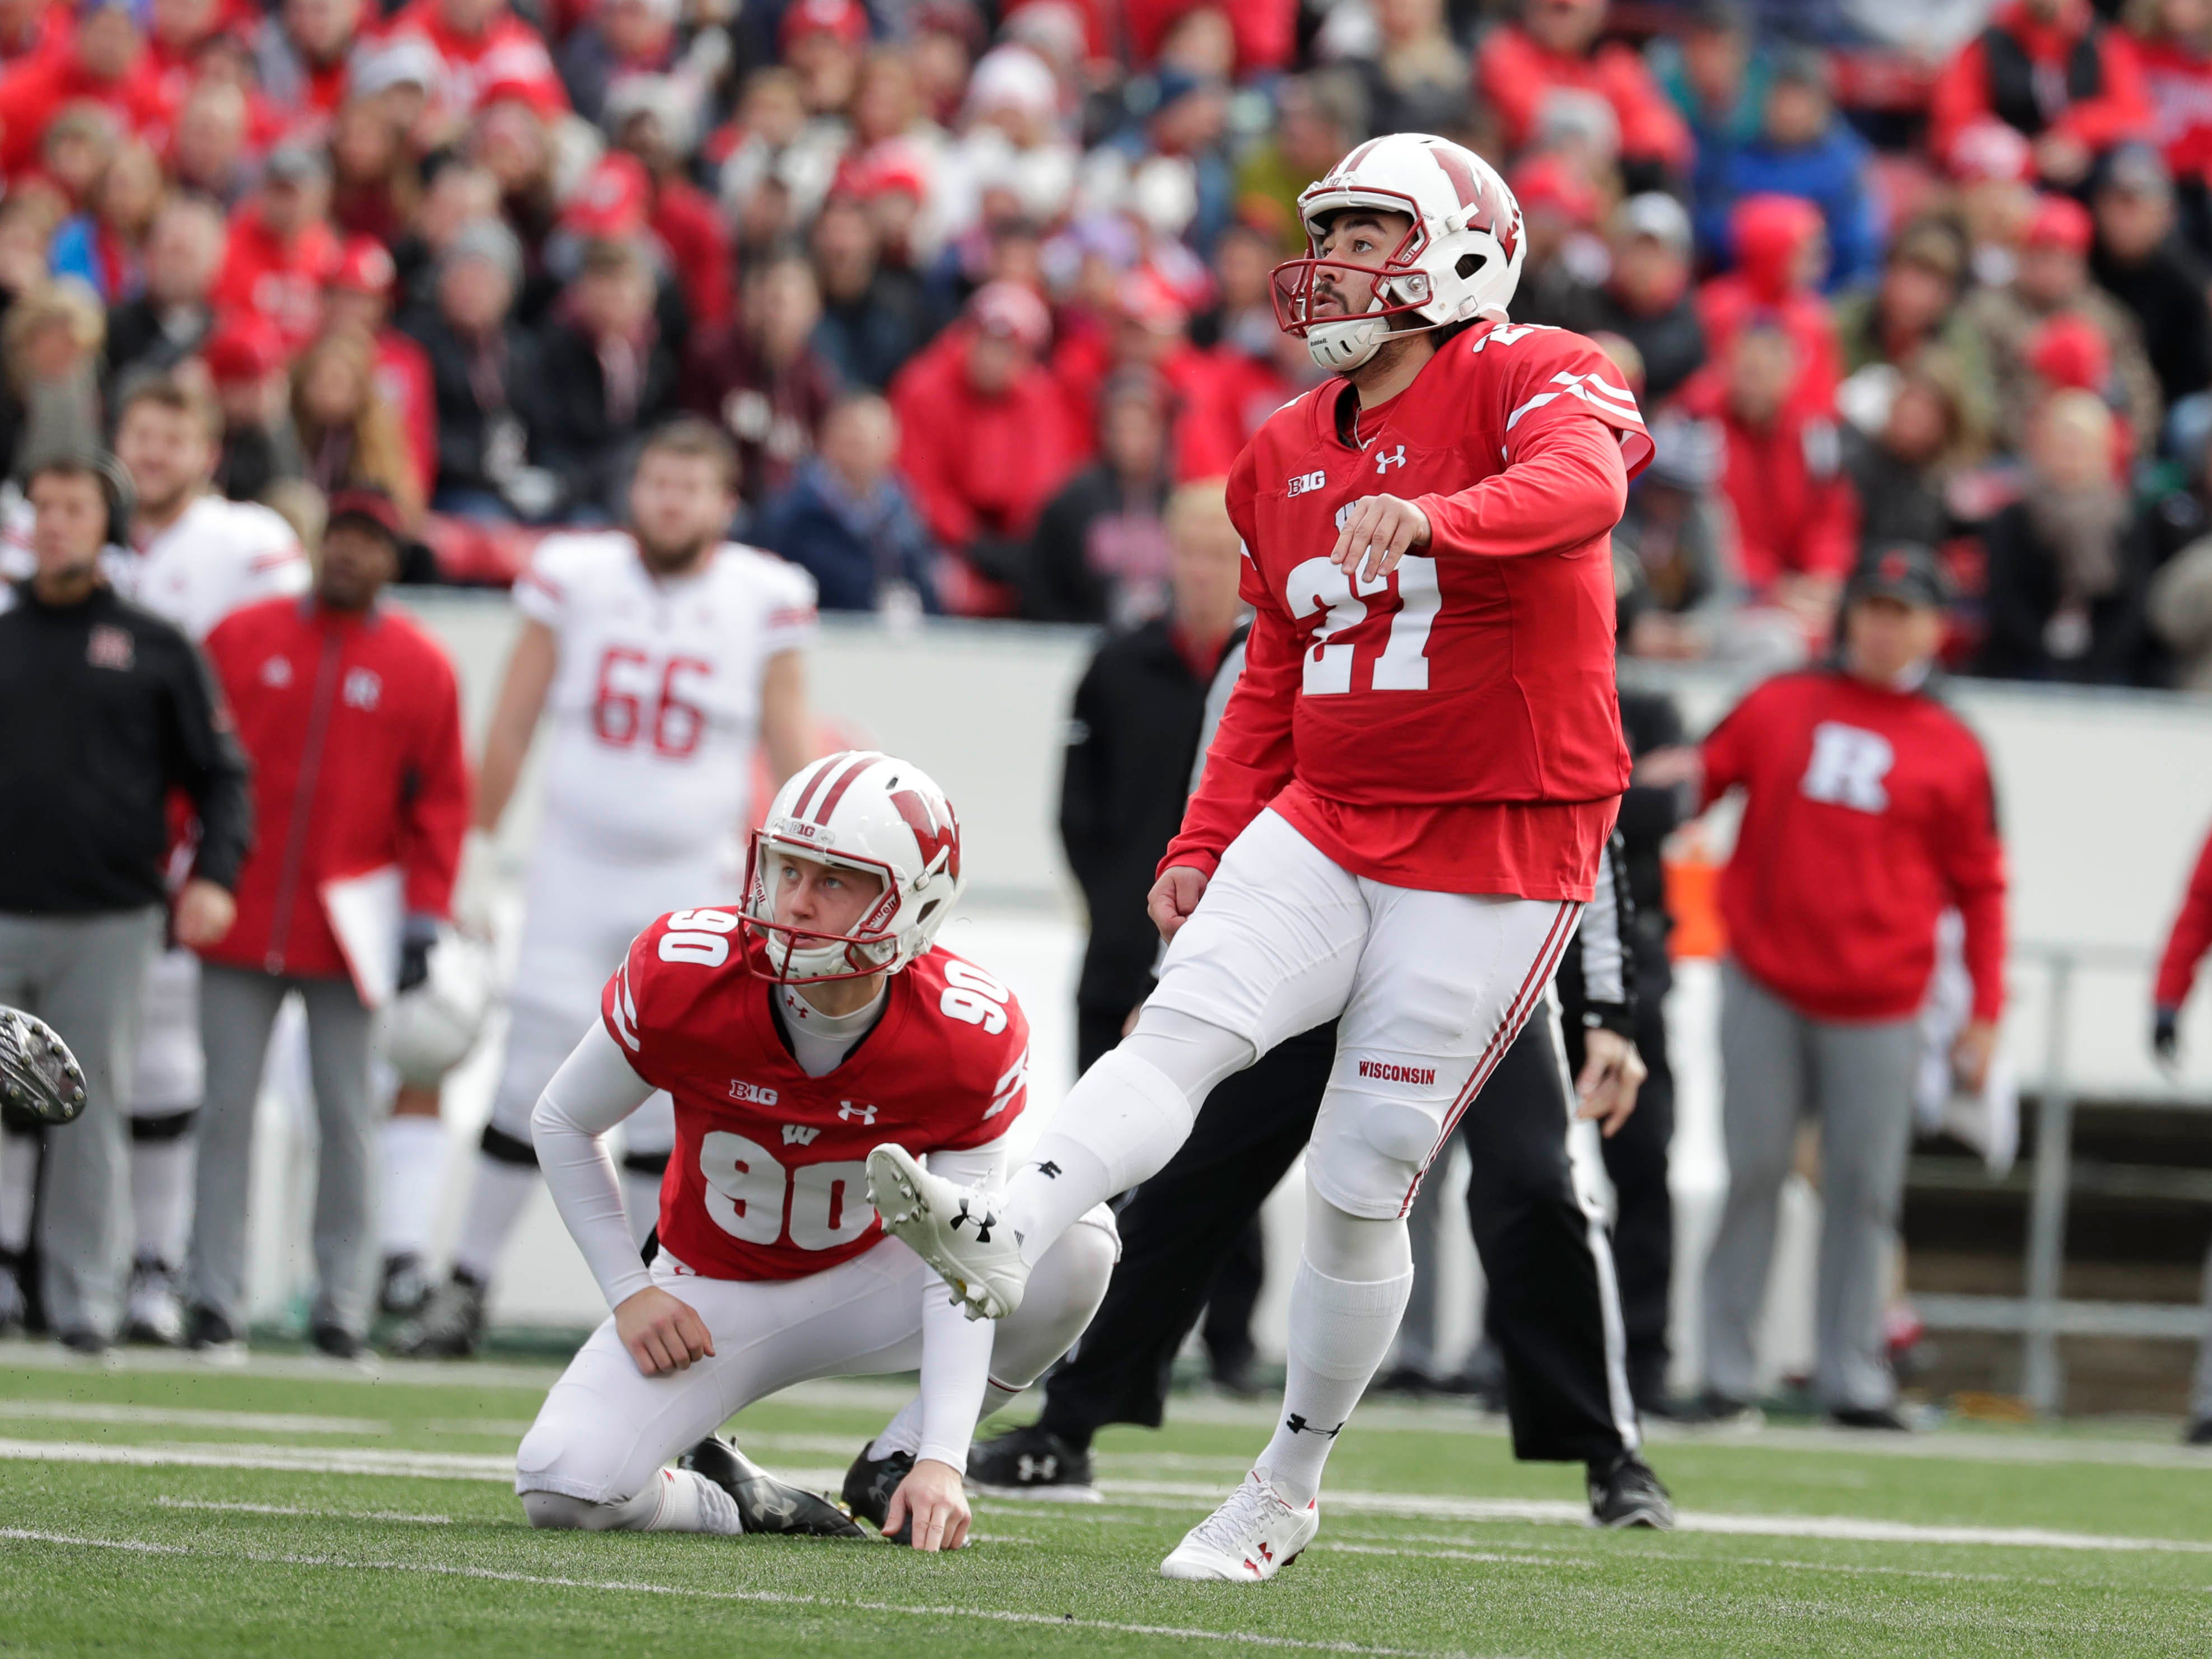 Wisconsin place kicker Rafael Gaglianone boots a 32-yard field goal to give the Badgers a 10-0 lead over Rutgers early in the second quarter on Saturday.